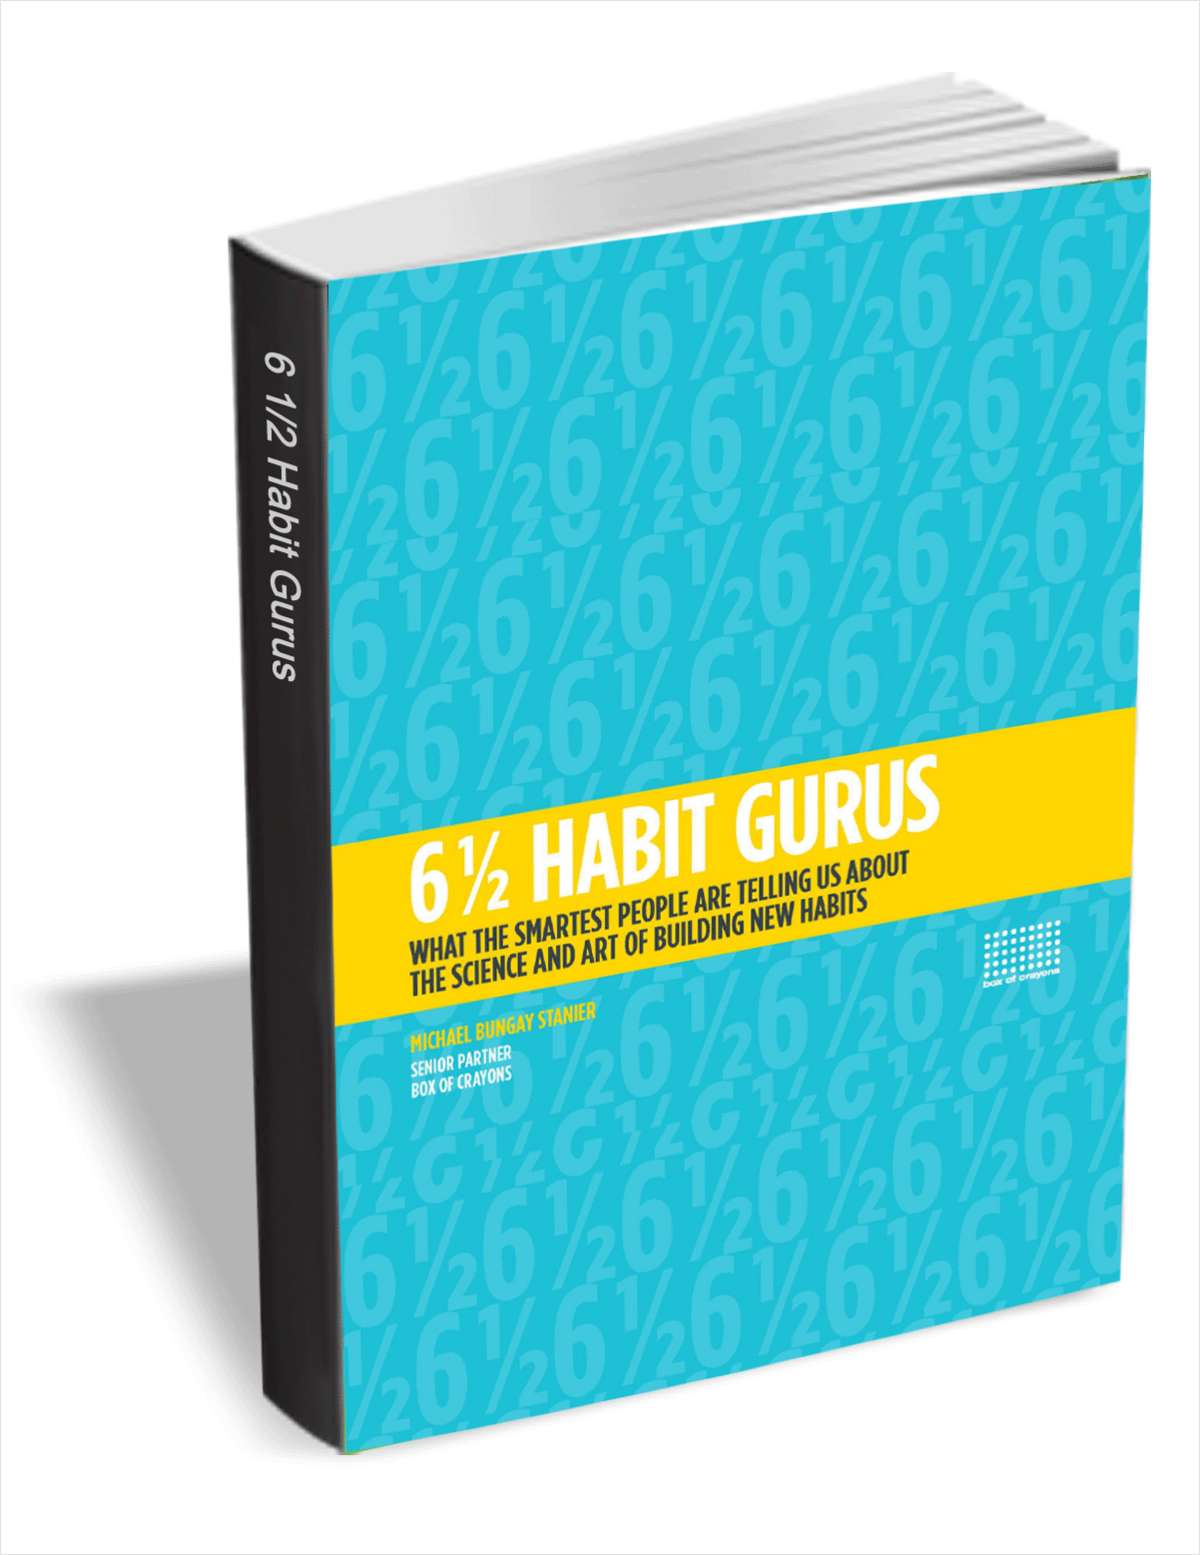 6 1/2 Habit Gurus: What the Smartest People are Telling Us About the Science and Art of Building New Habits